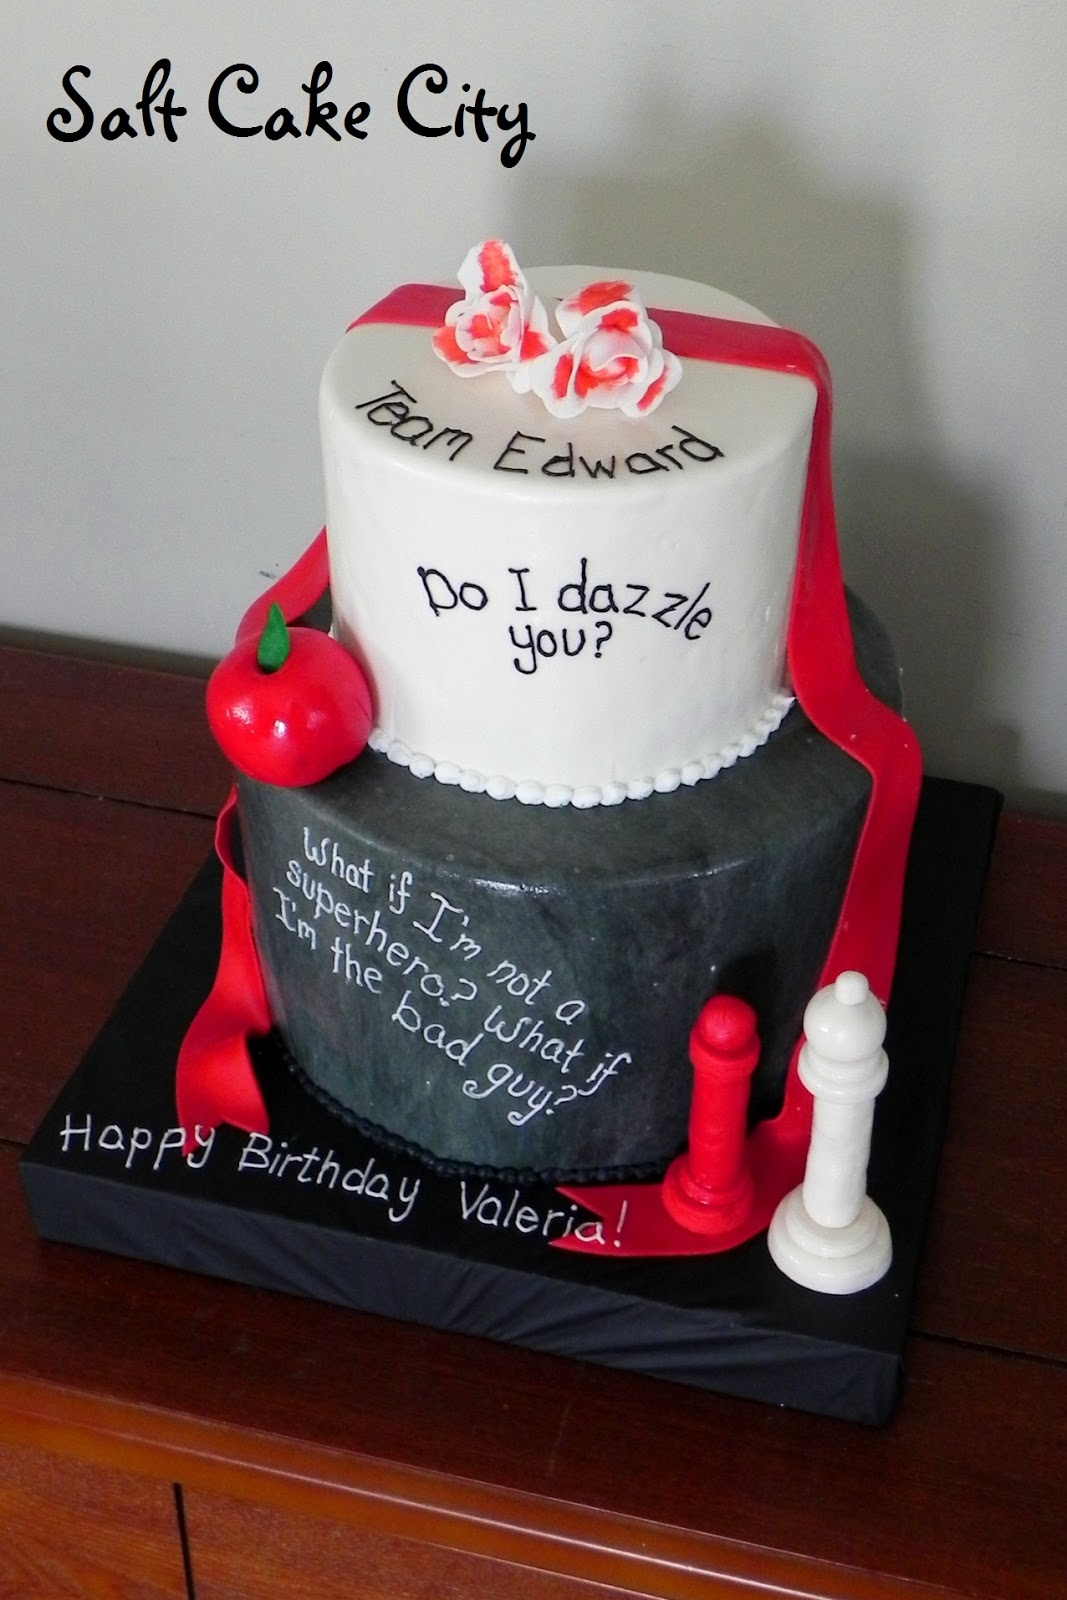 493 Twilight Quotes Cake 1 067 1 600 Pixels